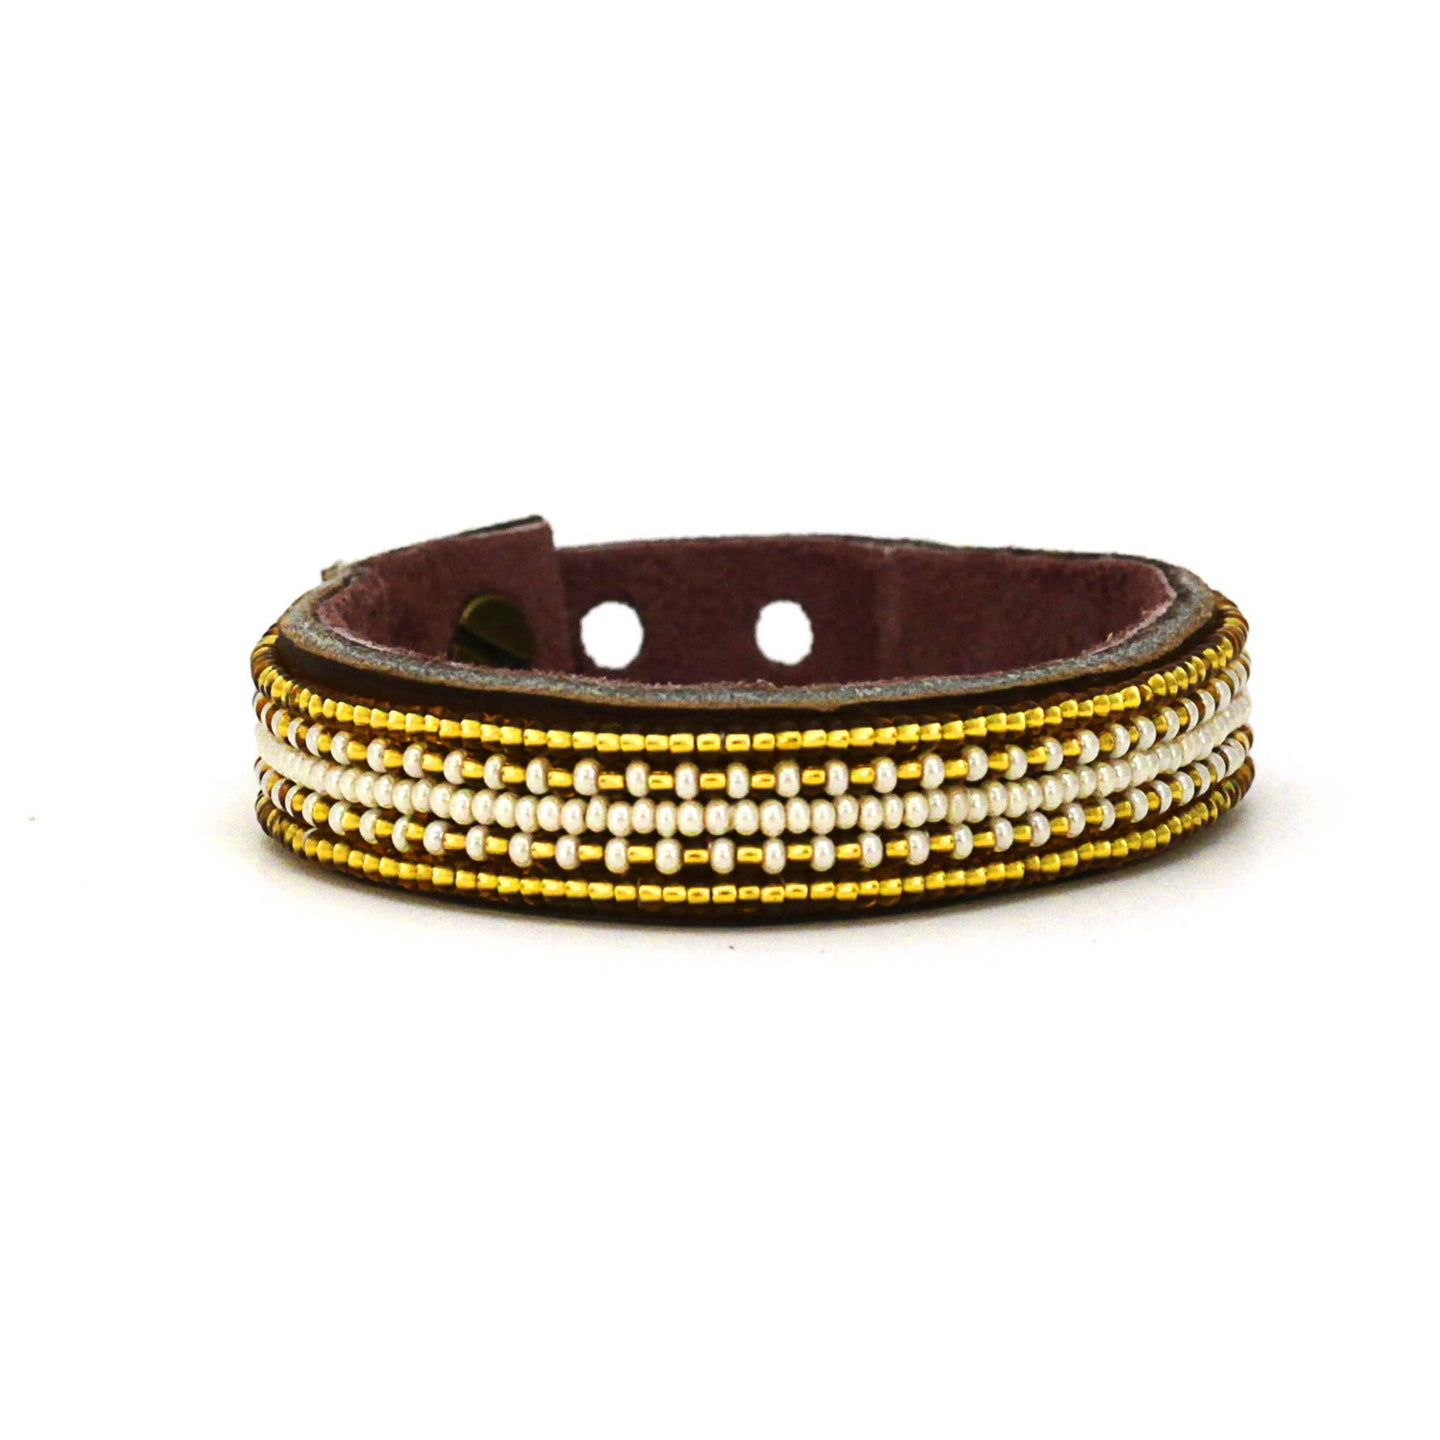 Swahili Coast - Small Gold and Pearl Stripe Leather Cuff